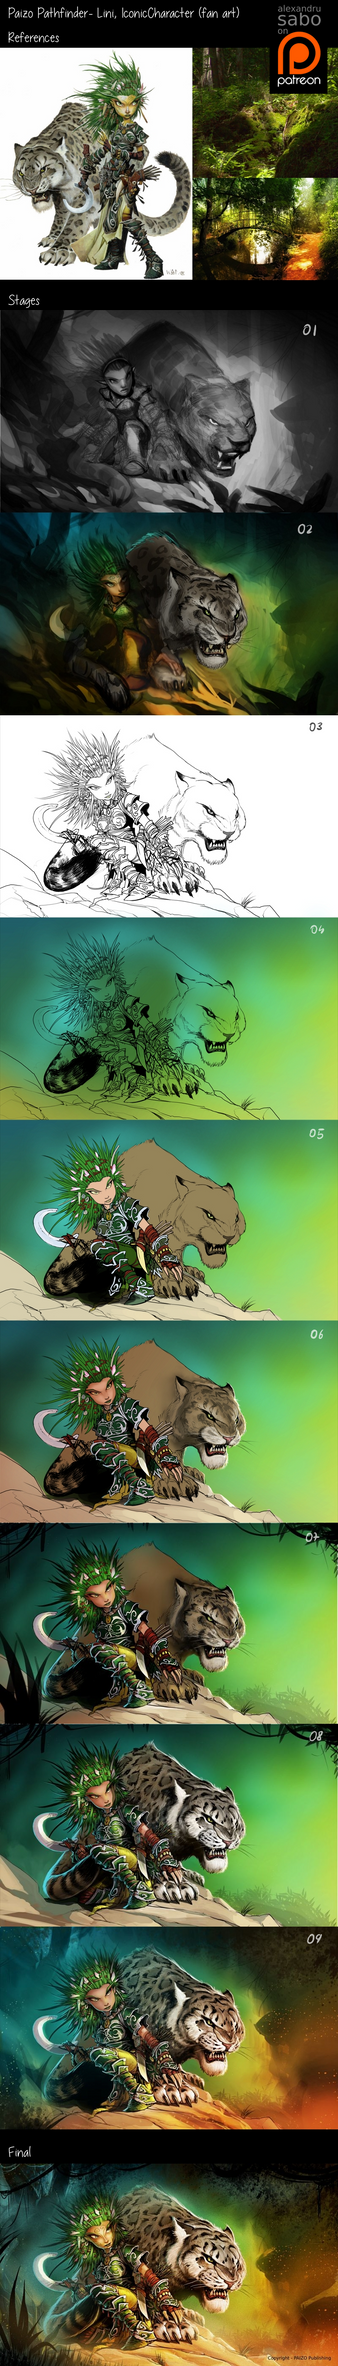 Lini - Pathfinder Fanart - work stages by AlexSabo